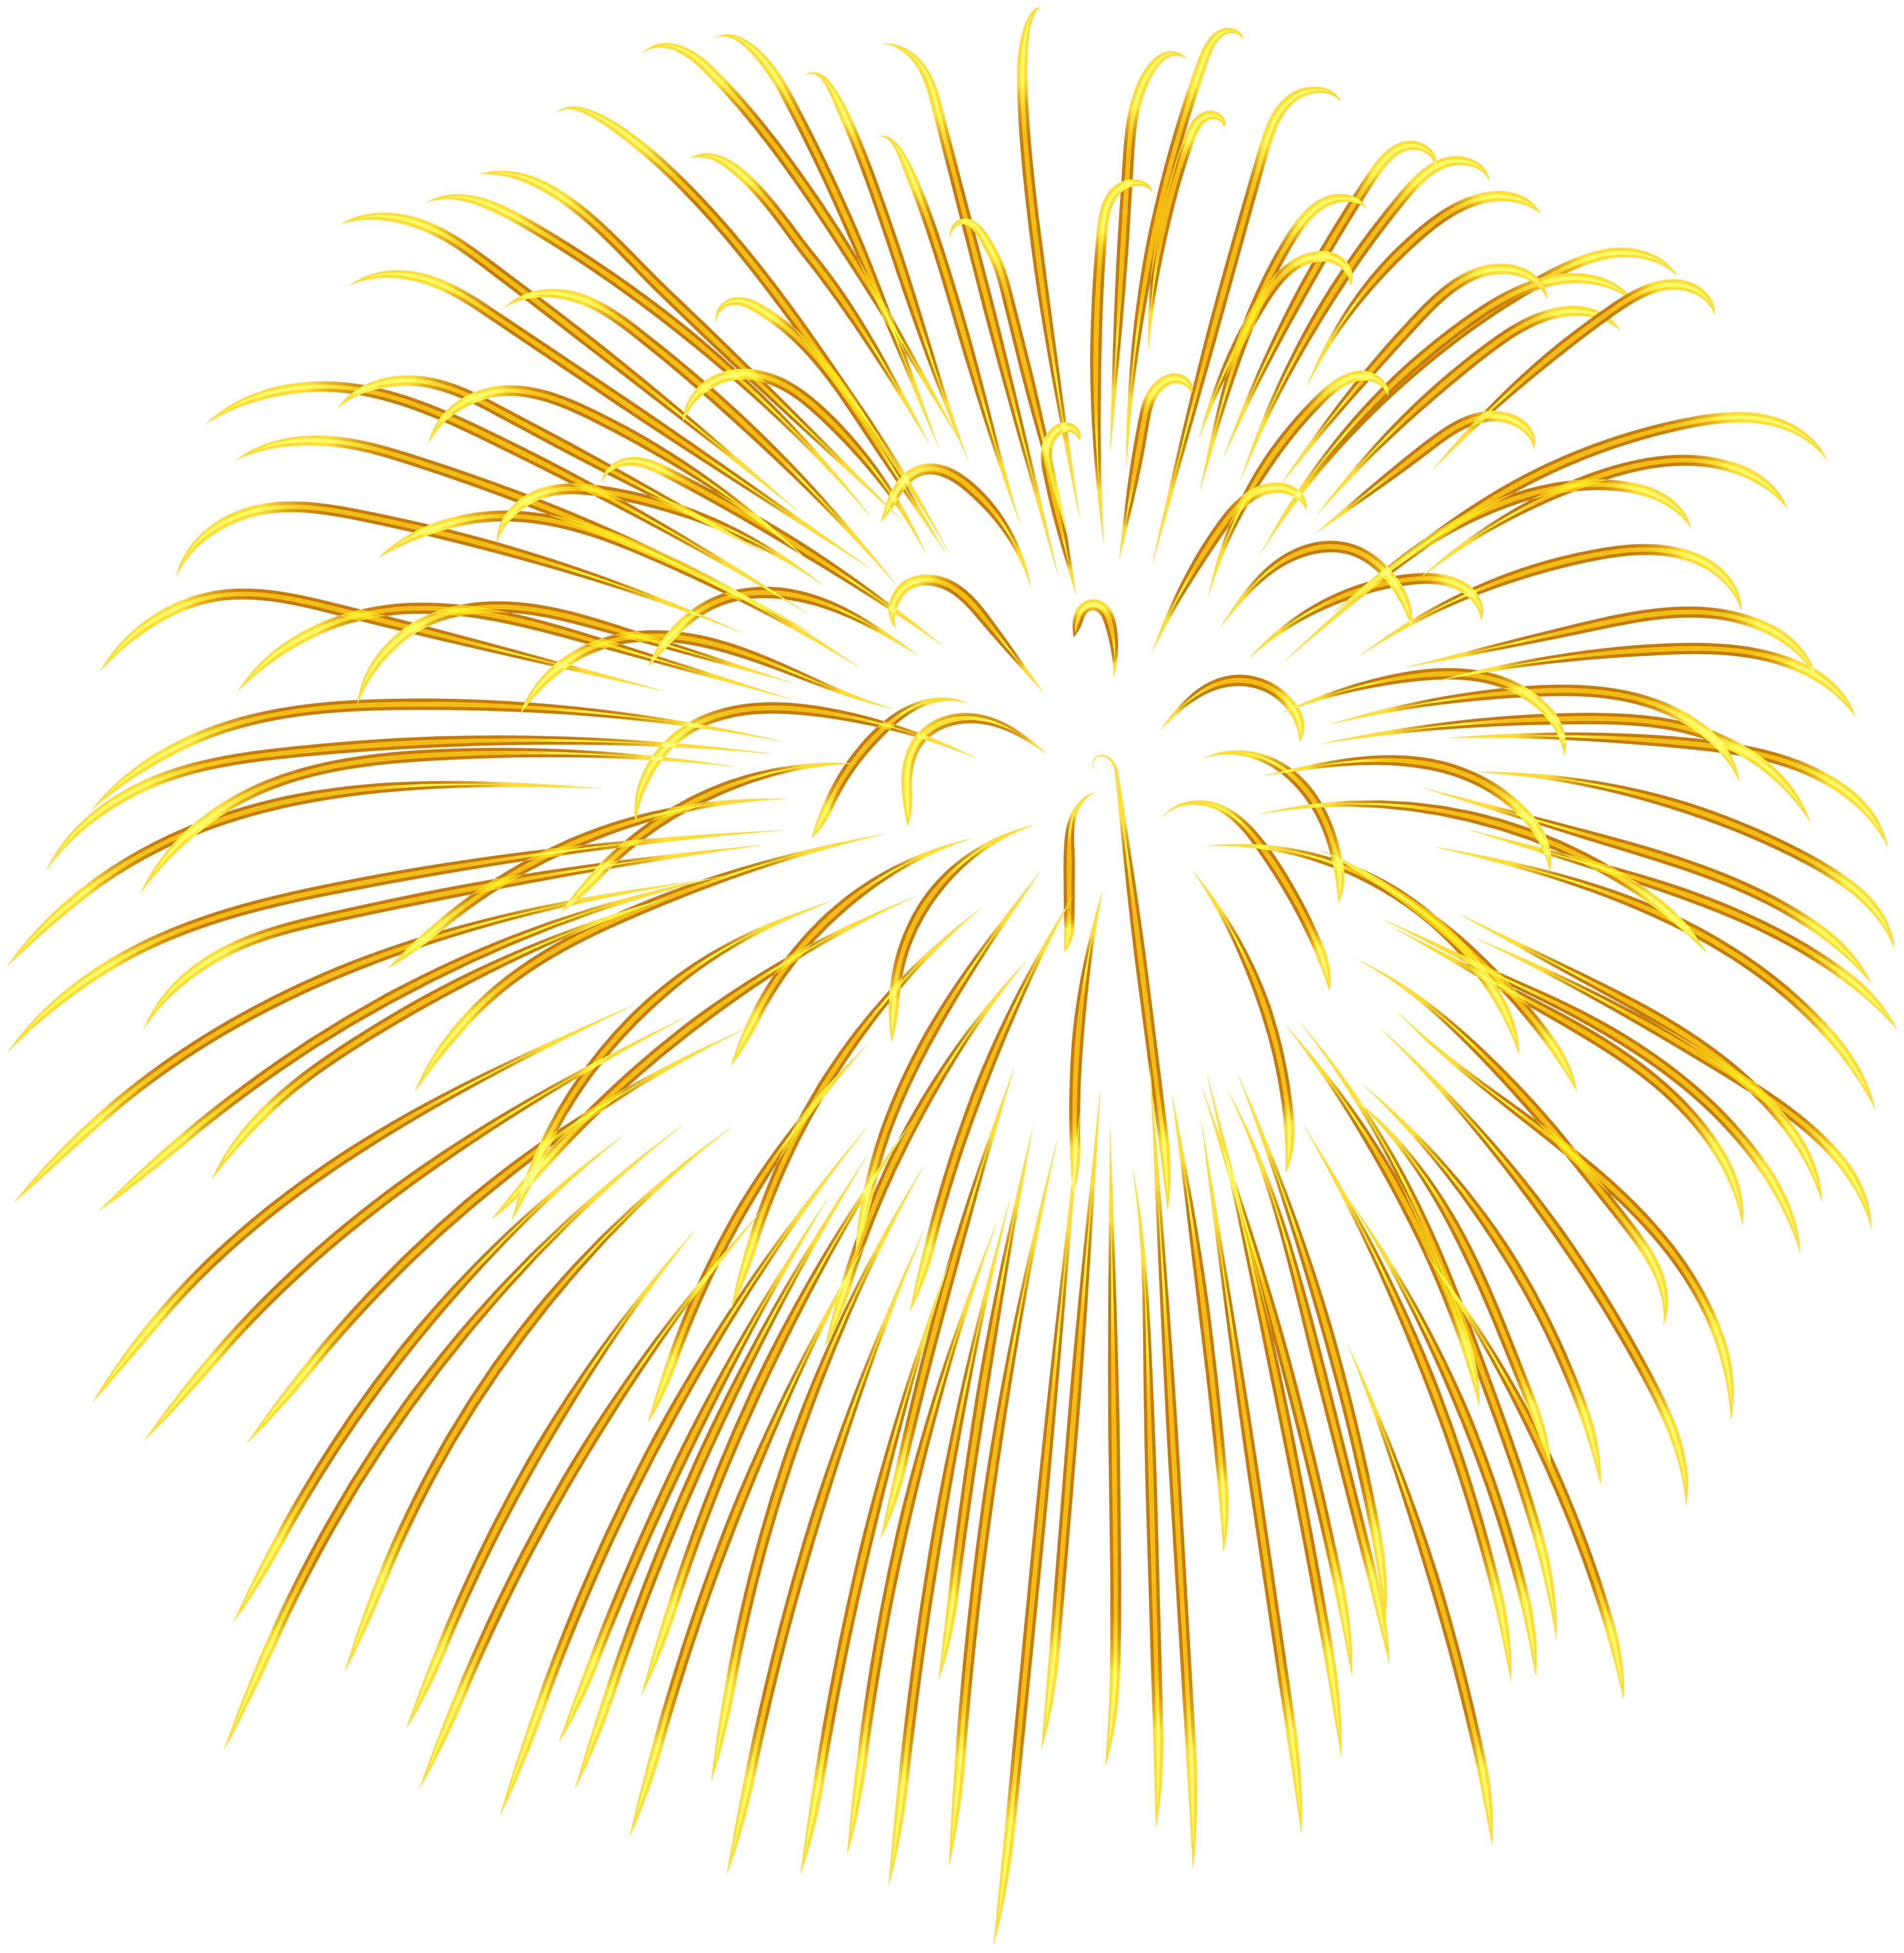 hight resolution of firework yellow transparent png image